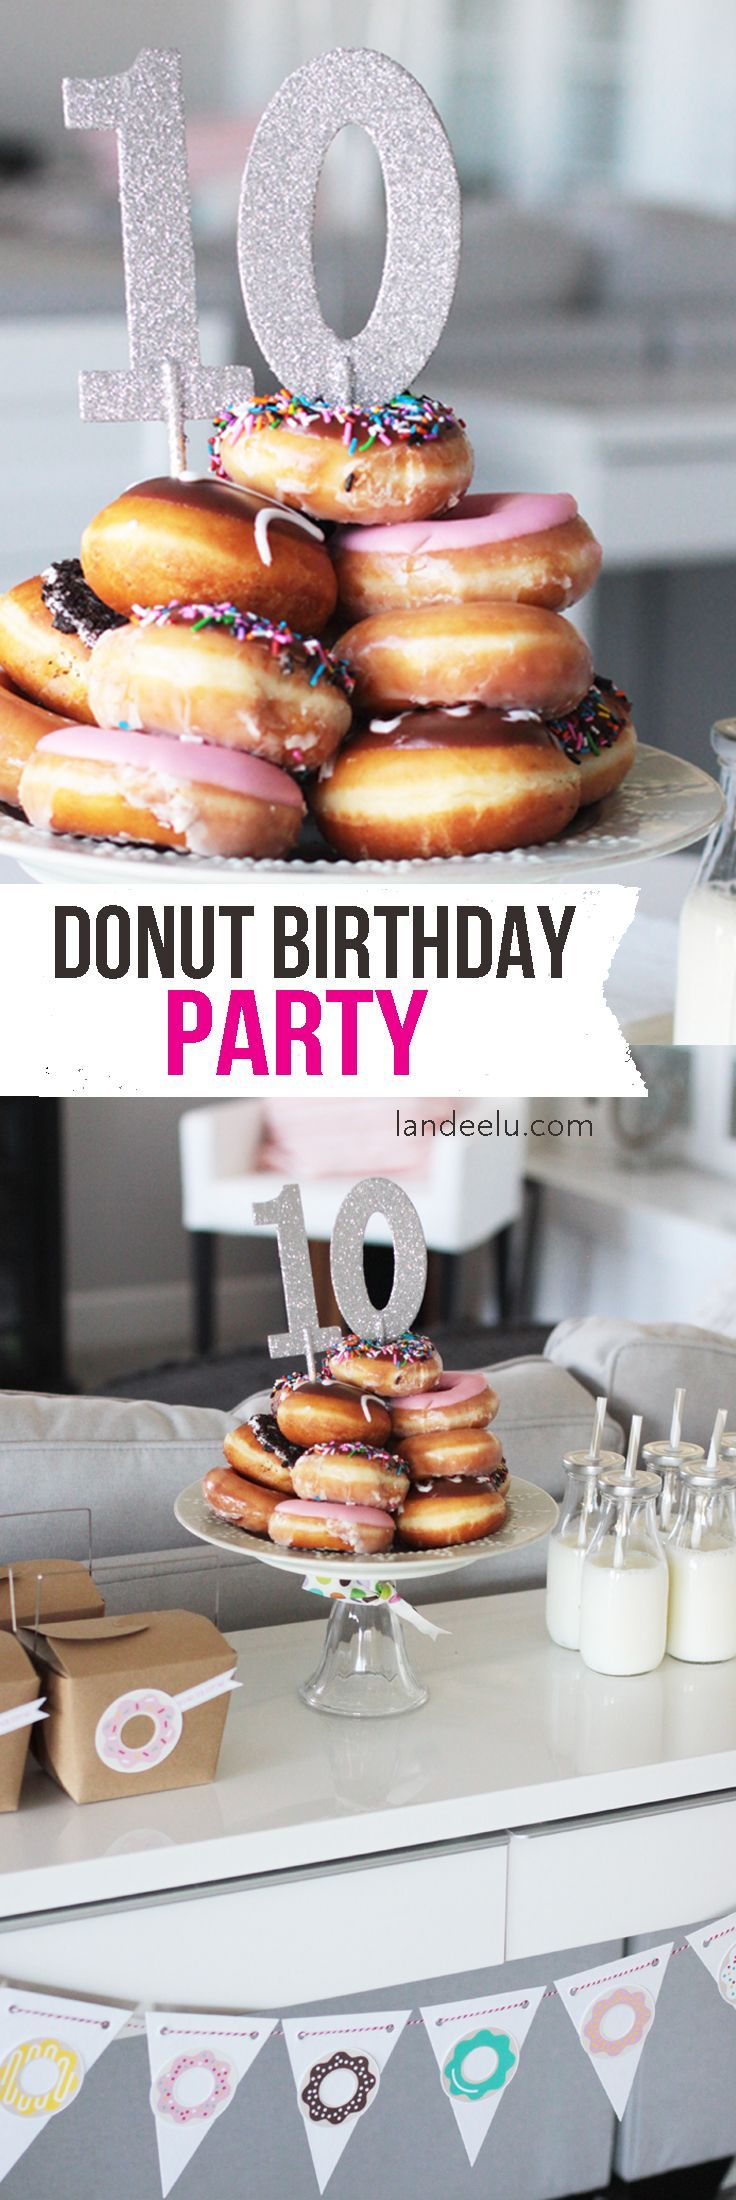 Throw a super fun Donut Theme Birthday Party!  It'll be a hit!  DIY TUTORIAL -  FREE PRINTABLE DONUT SPRINKLE GAME - Everyone loves Doughnuts!  www.landeeseelandeedo.com: